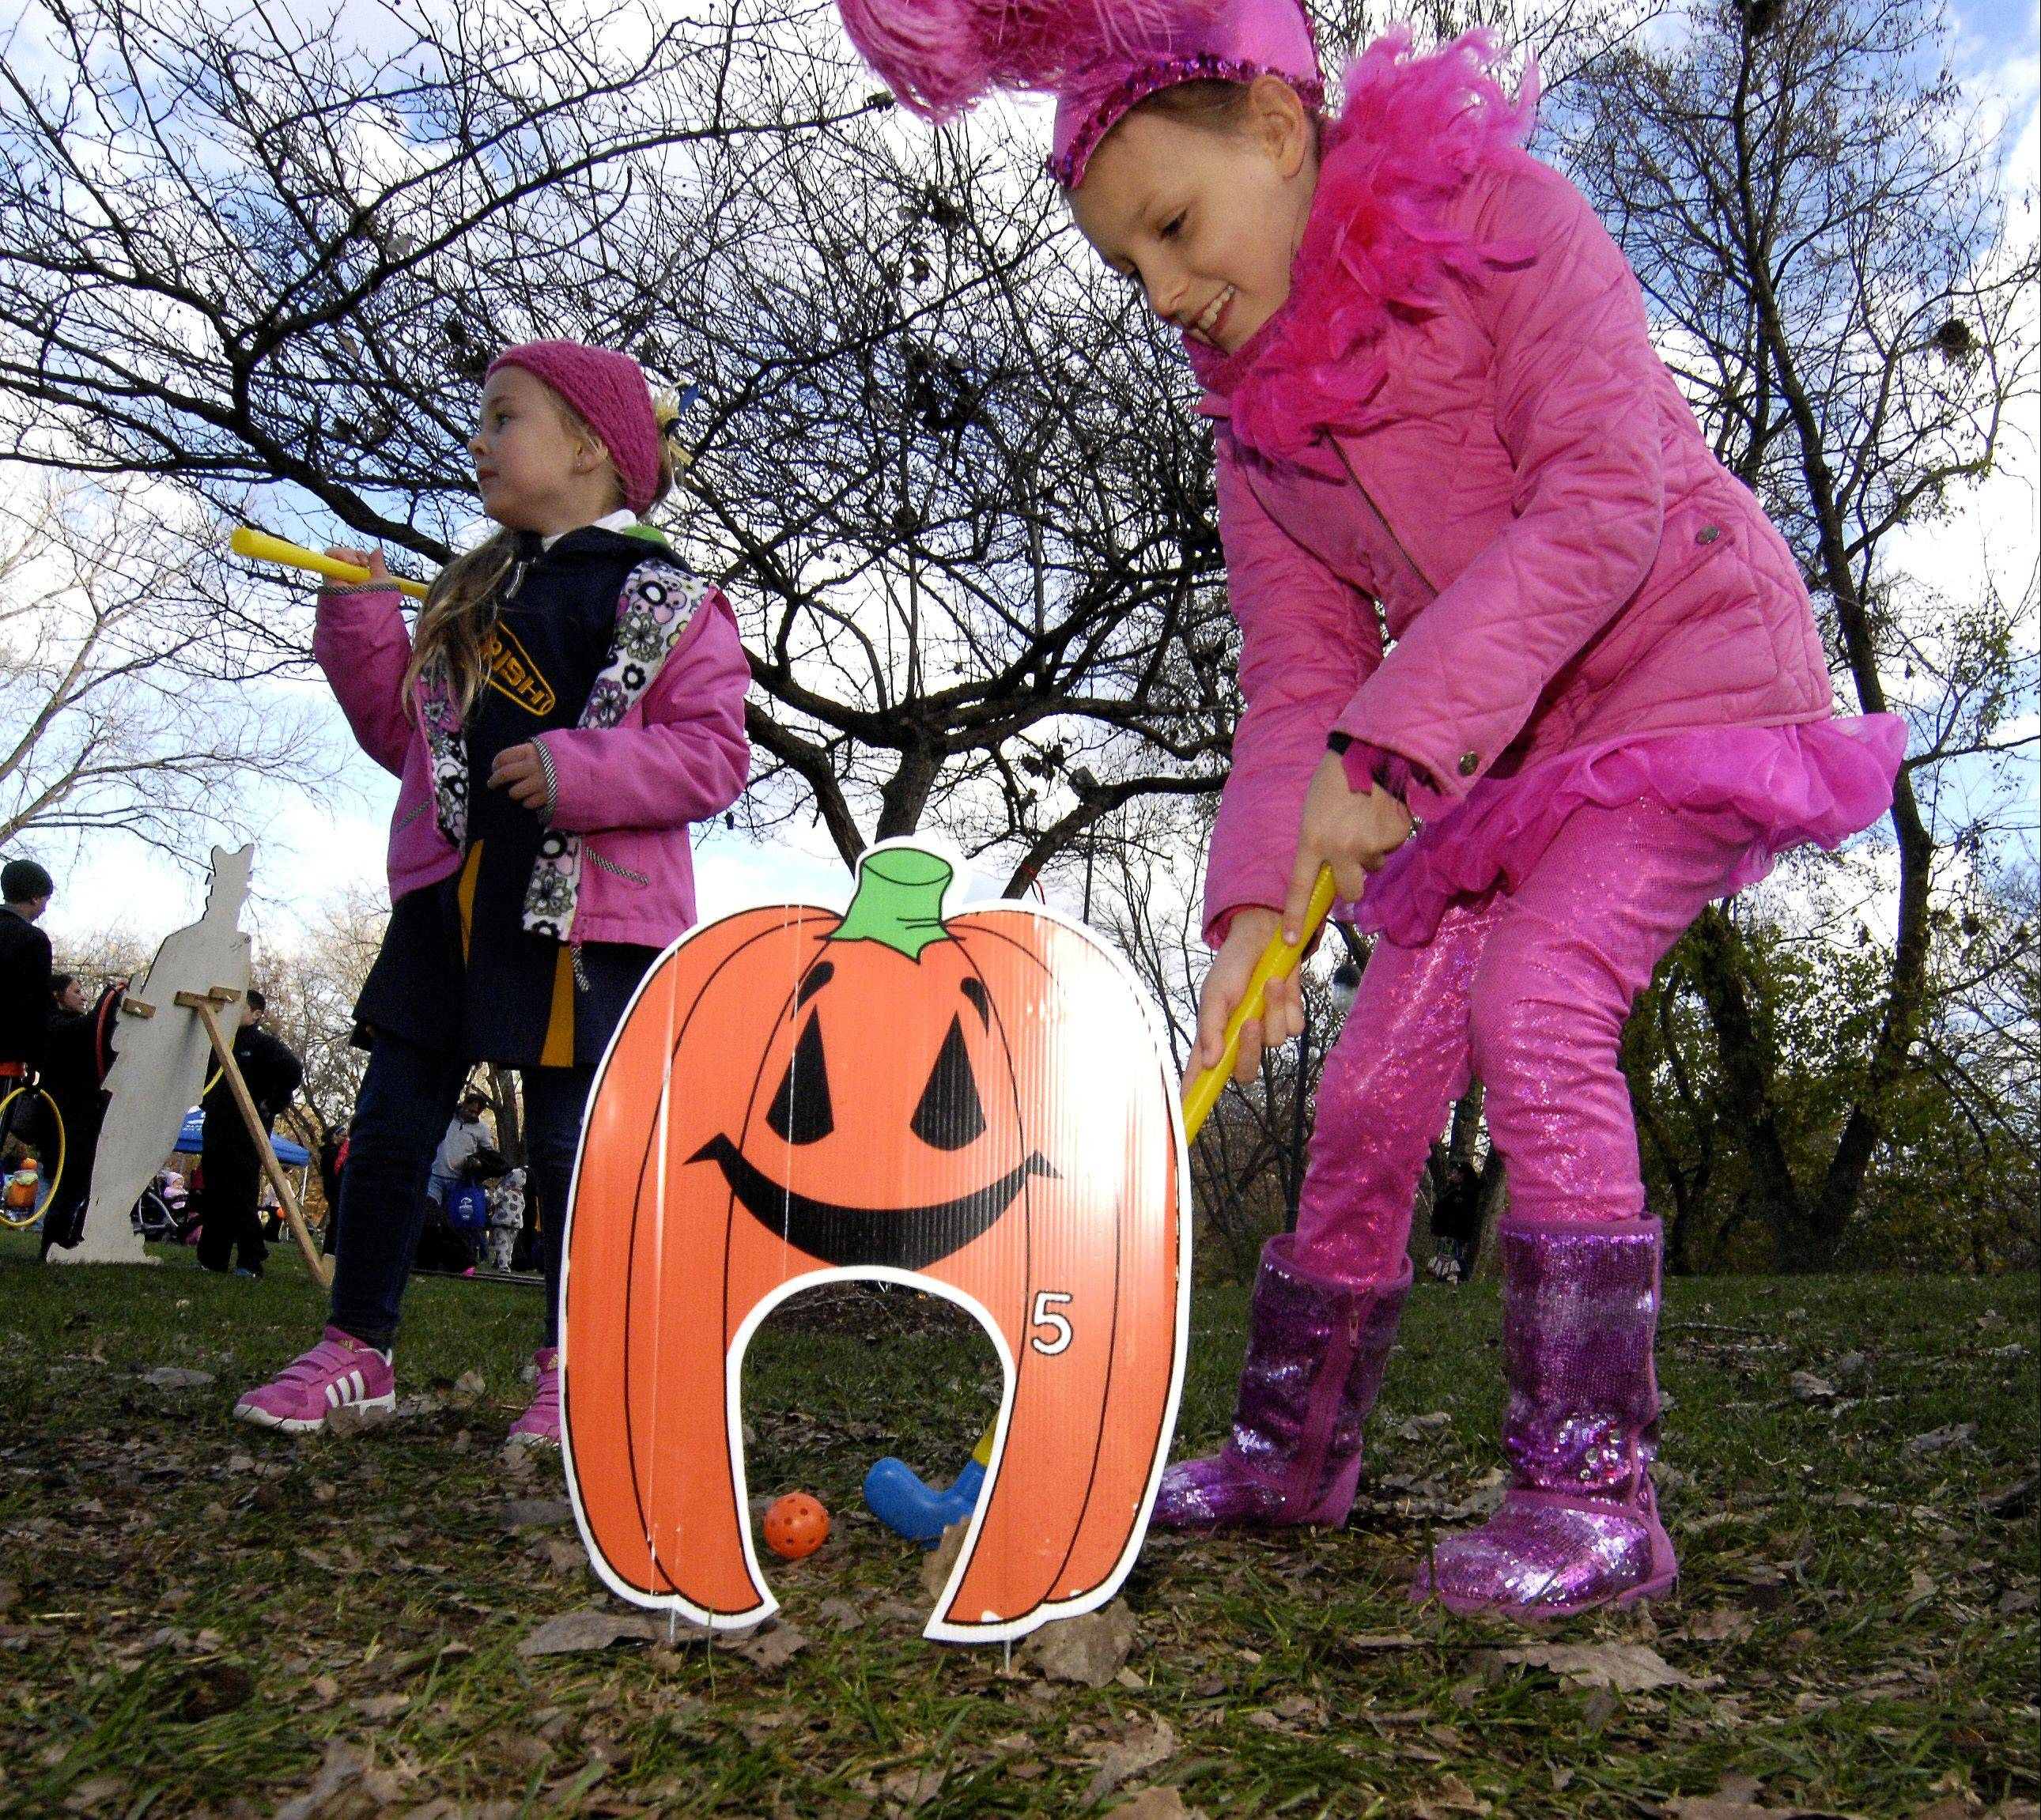 Victoria Blasko, 8, putts through a jack-o'-lantern while Sofia Bargen, 6, waits her turn during the Naperville Park District's Halloween Happening Sunday at the Grand Pavilion. Other events in downtown Naperville included trick-or-treating and the Naperville Park District's Halloween Happening at the Grand Pavilion.